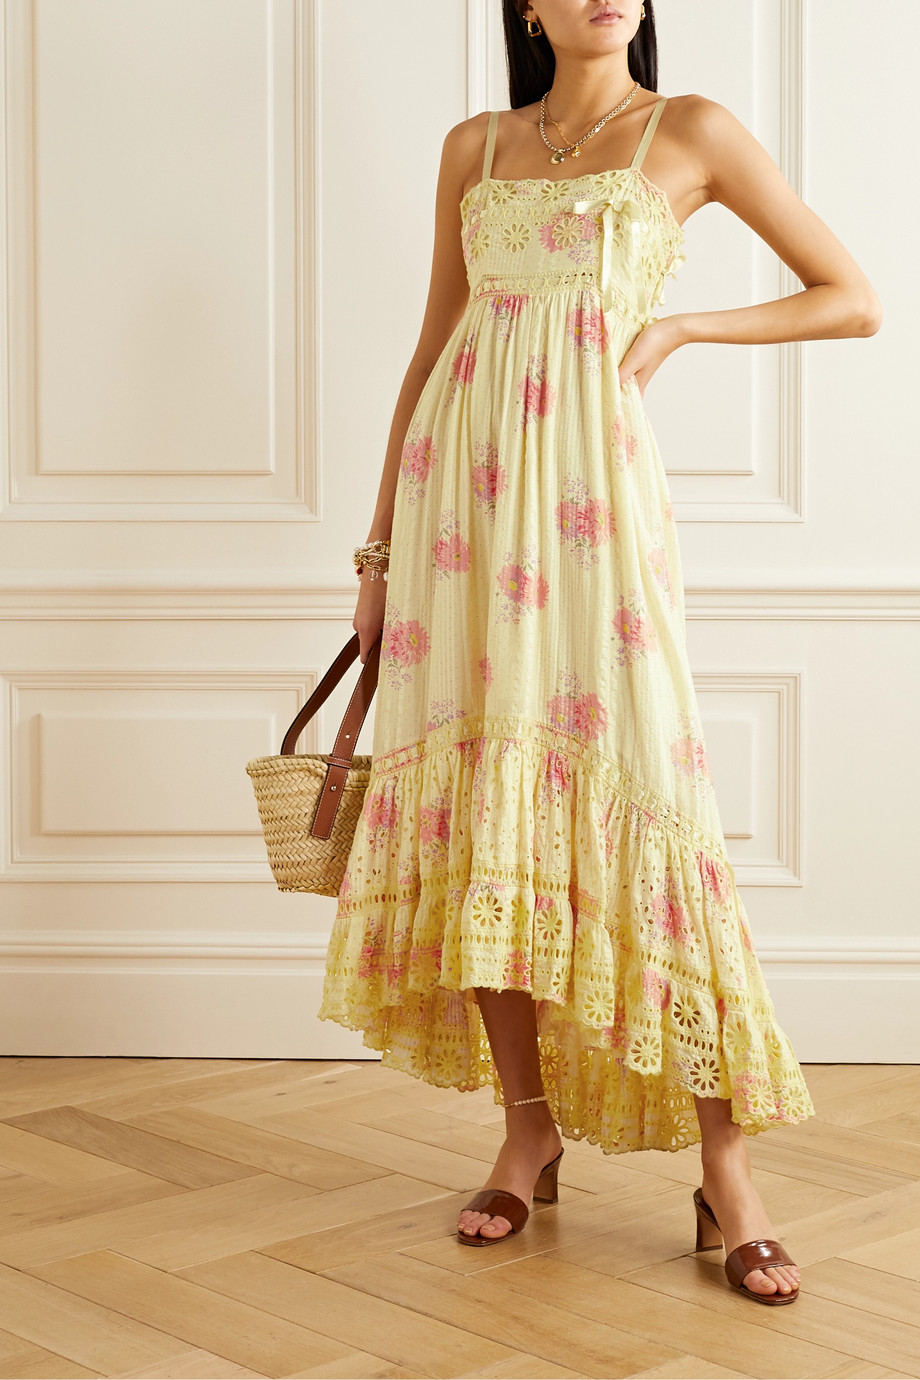 LoveShackFancy Vivi satin and broderie anglaise-trimmed floral-print cotton midi dress